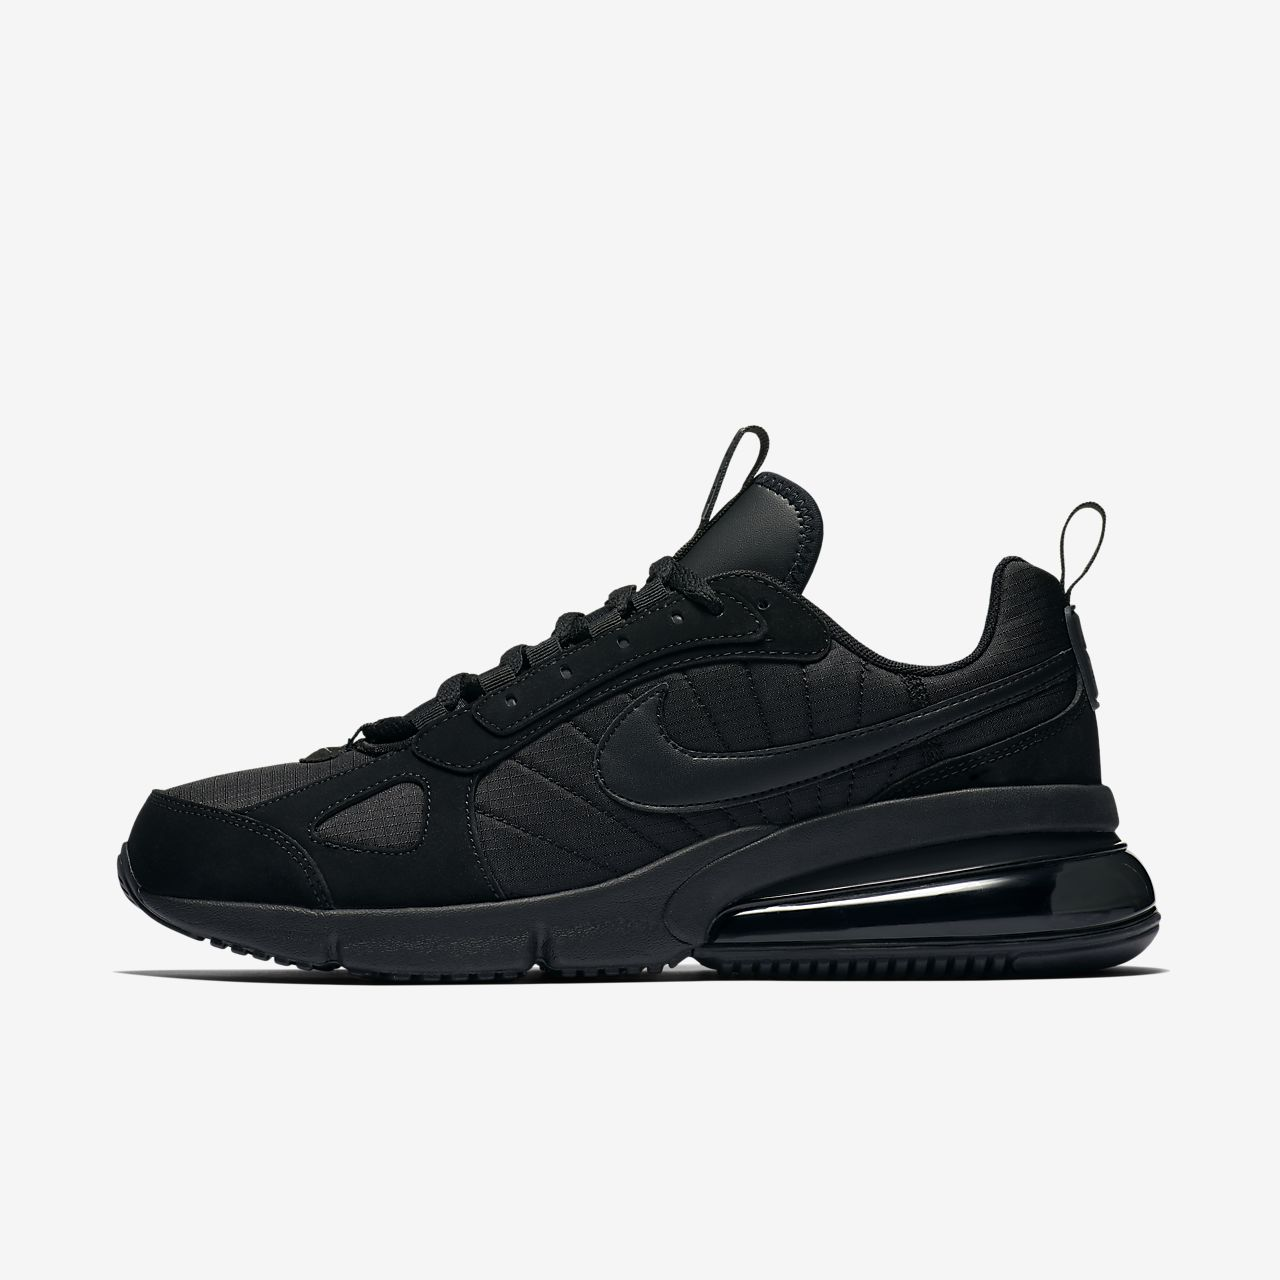 innovative design 65c4a 7f1a6 Nike Air Max 270 Futura